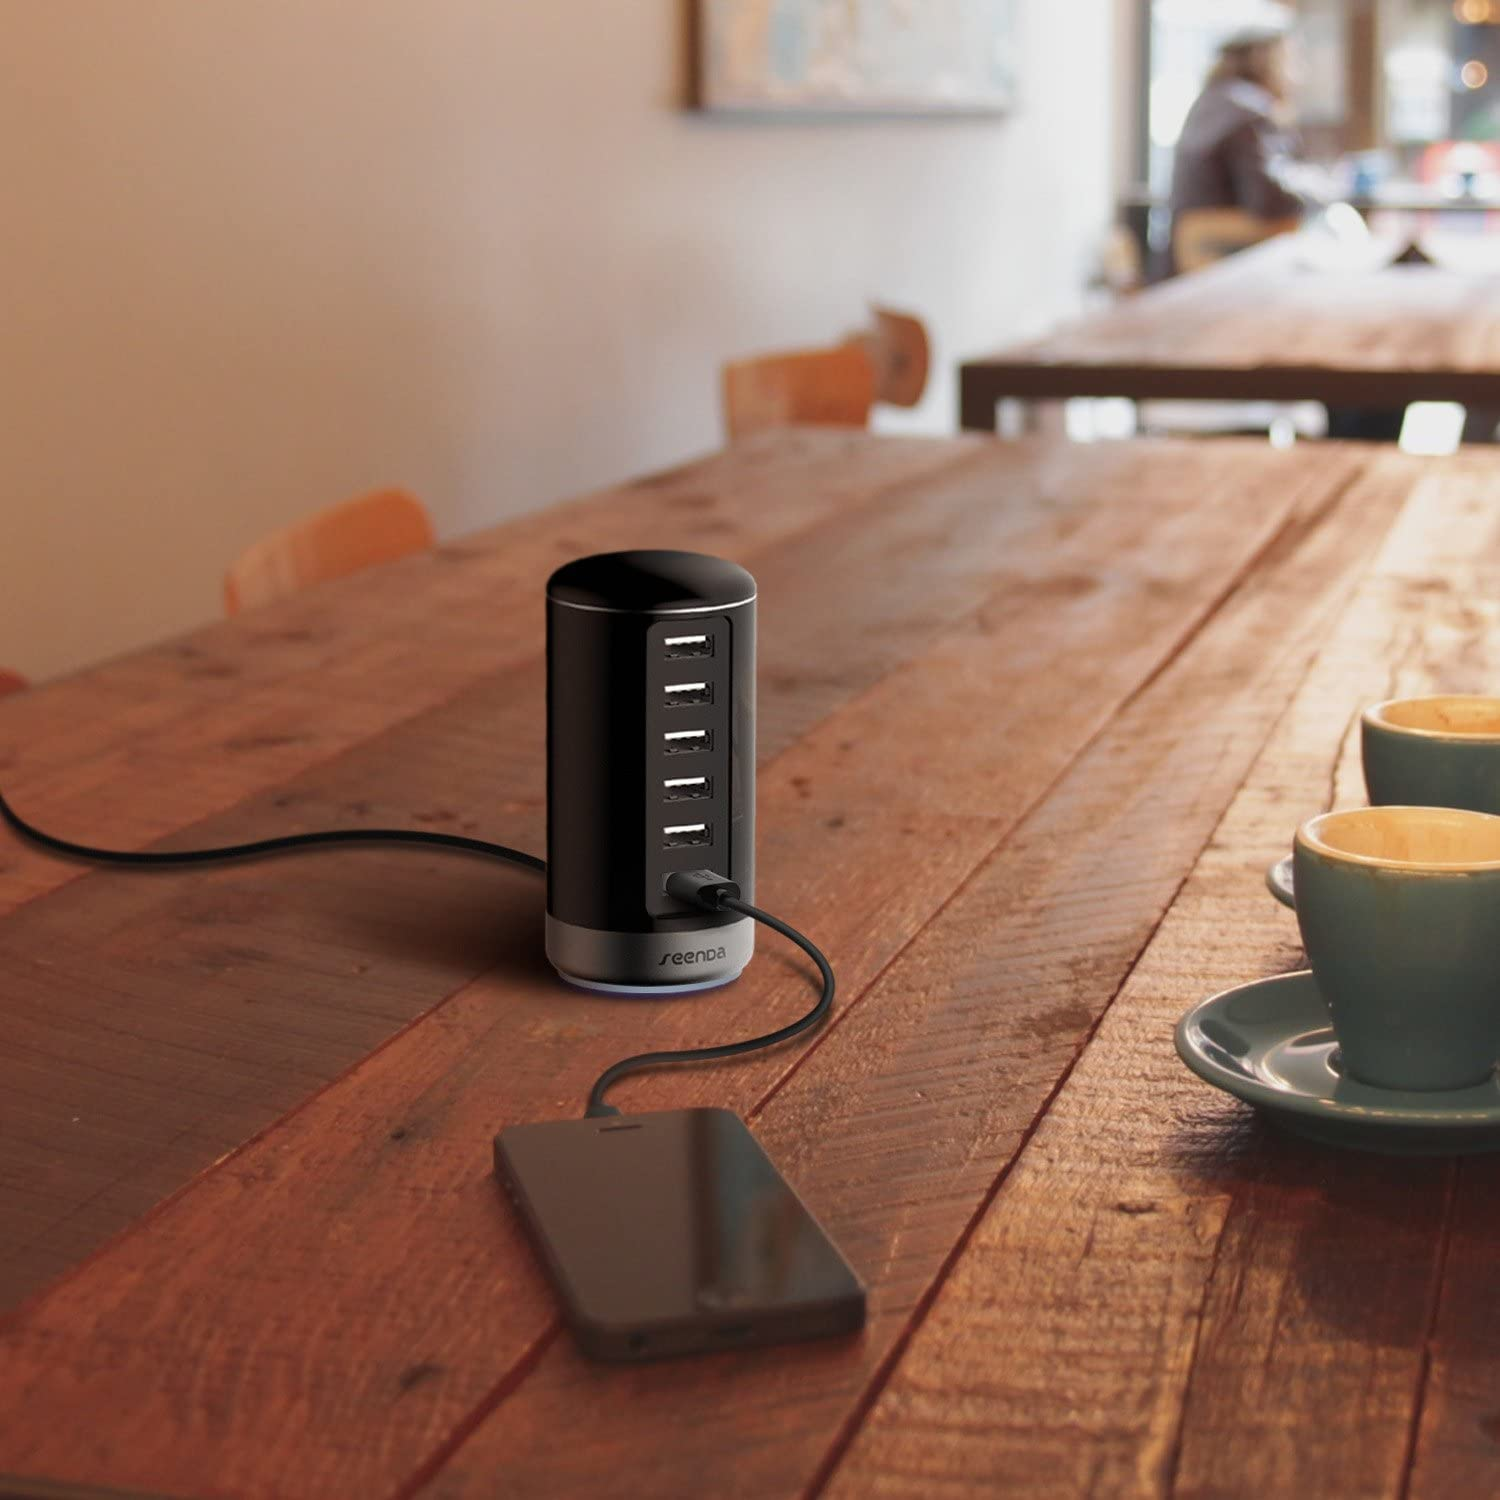 seenda USB Charger Black 6 Port USB Wall Charger USB Charging Stations with Smart Identification